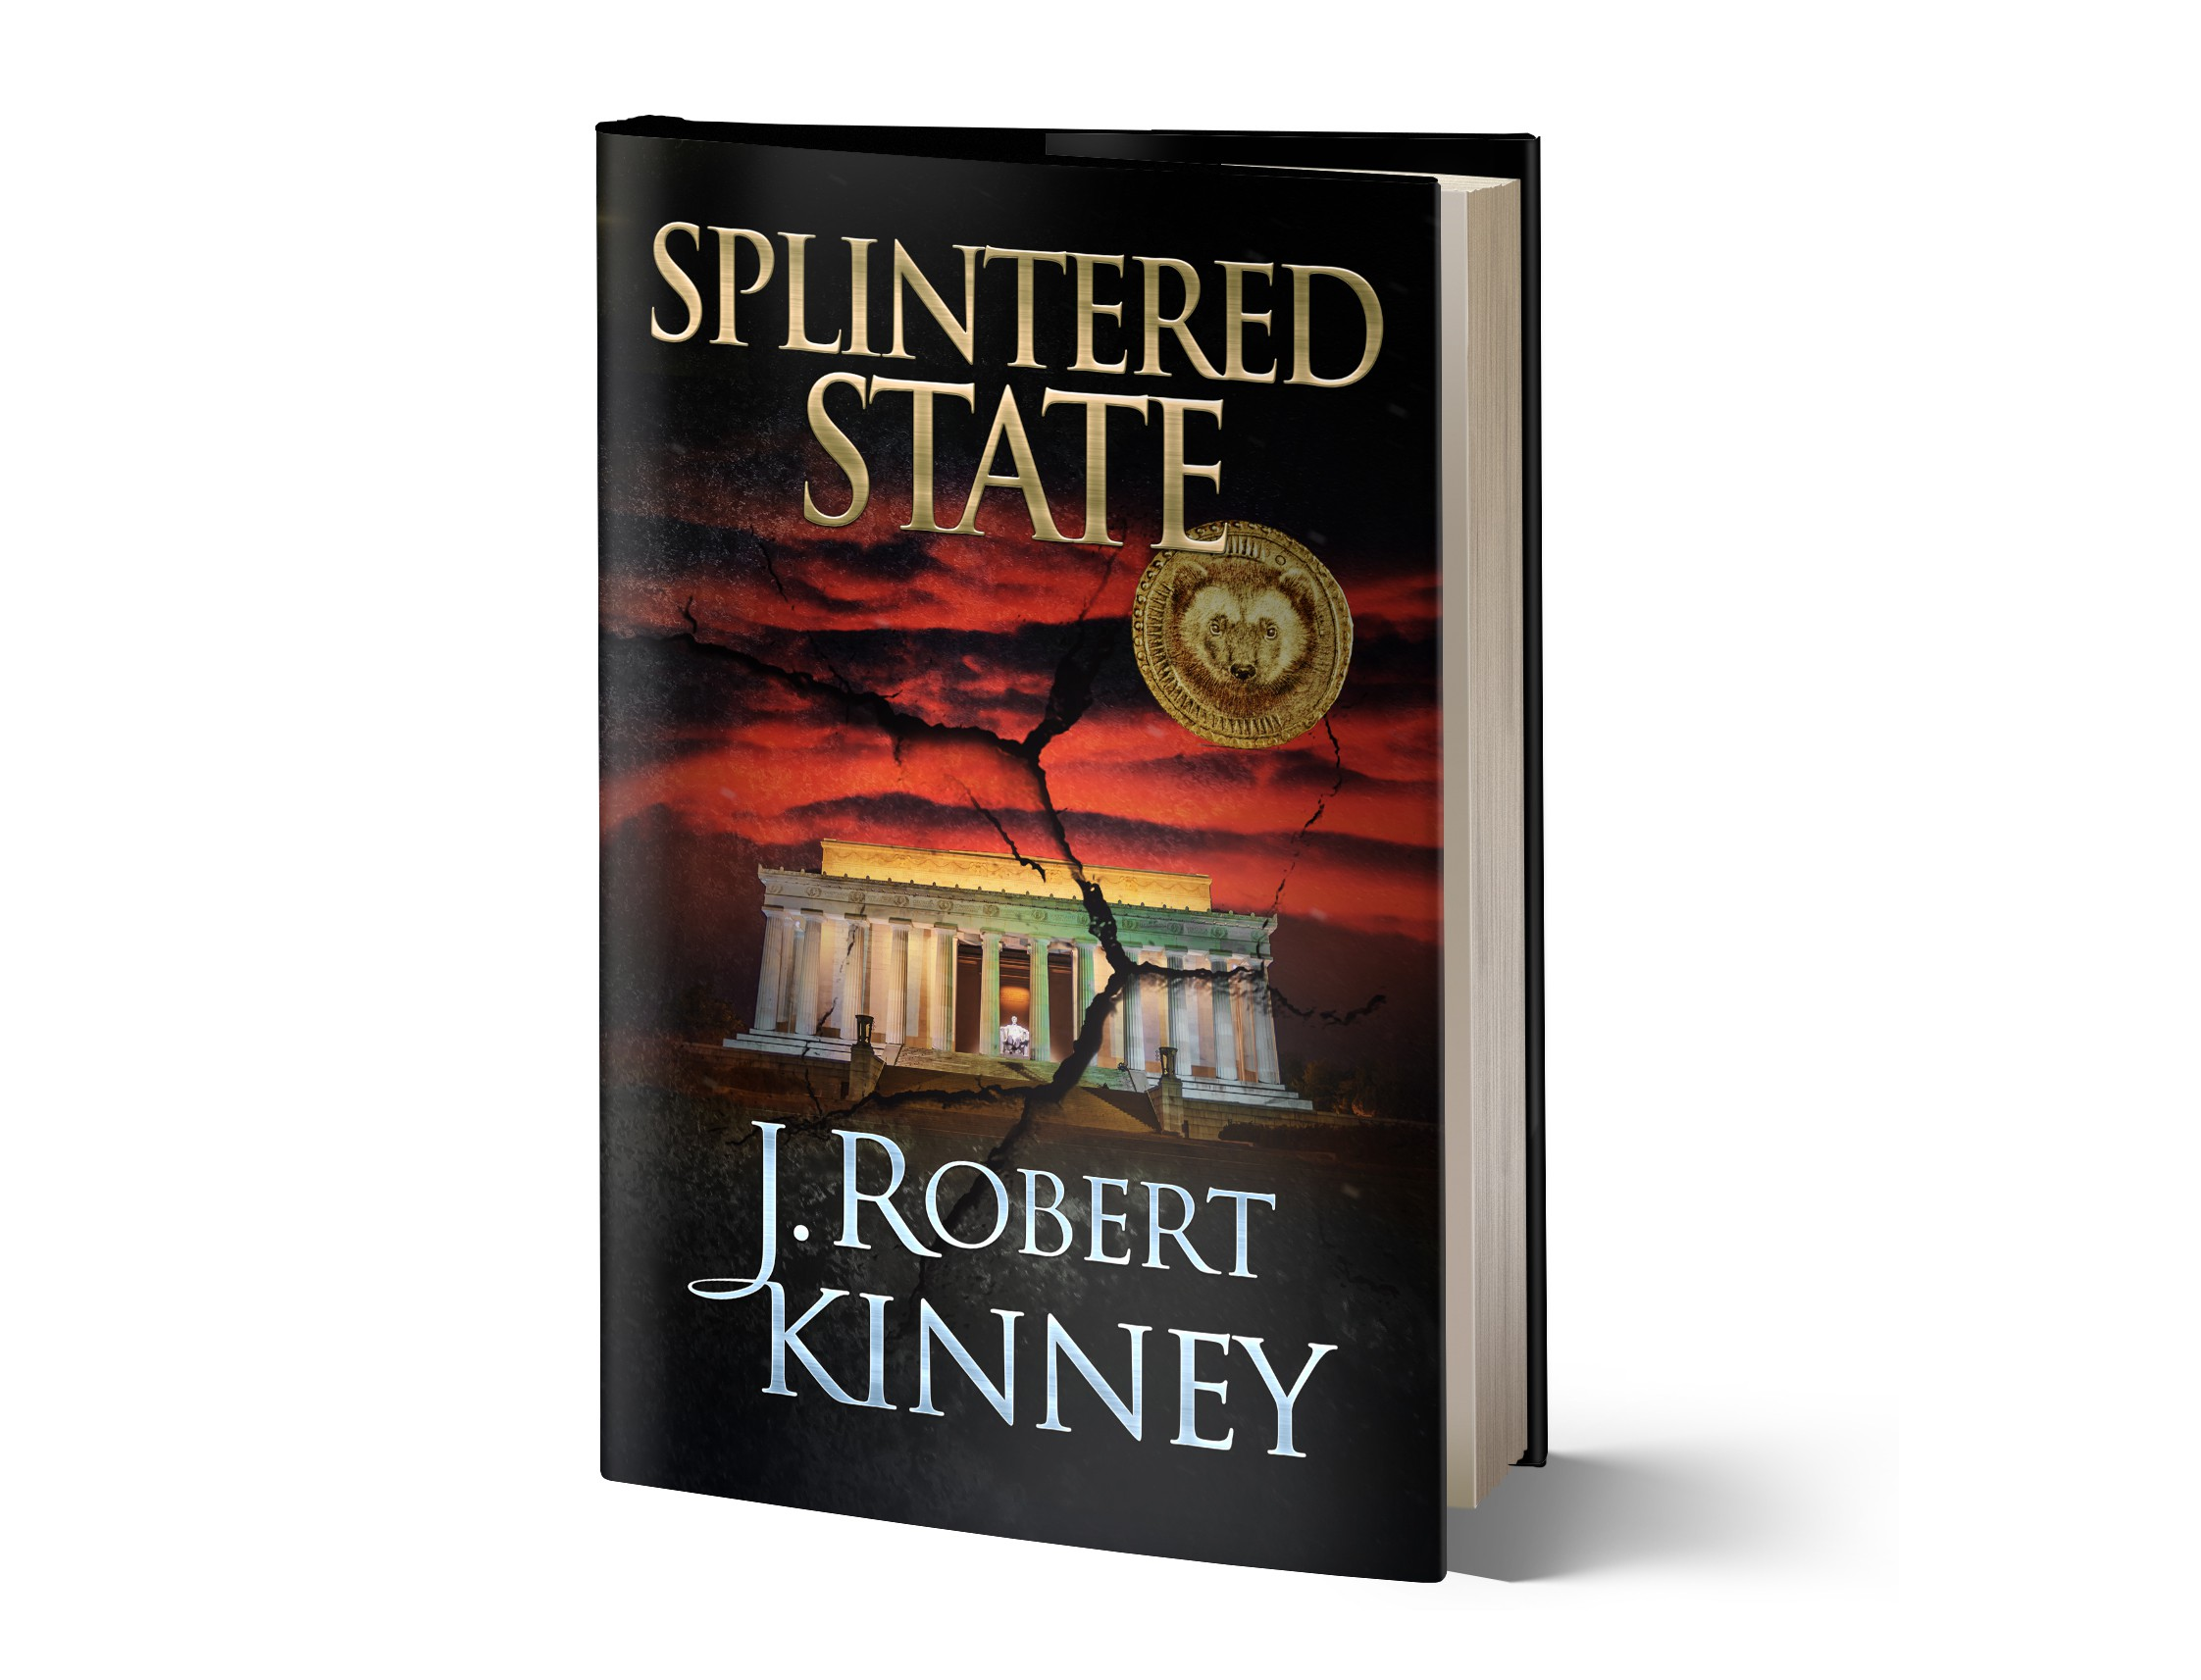 Mystery/suspense novel needs a book cover to catch your eye!